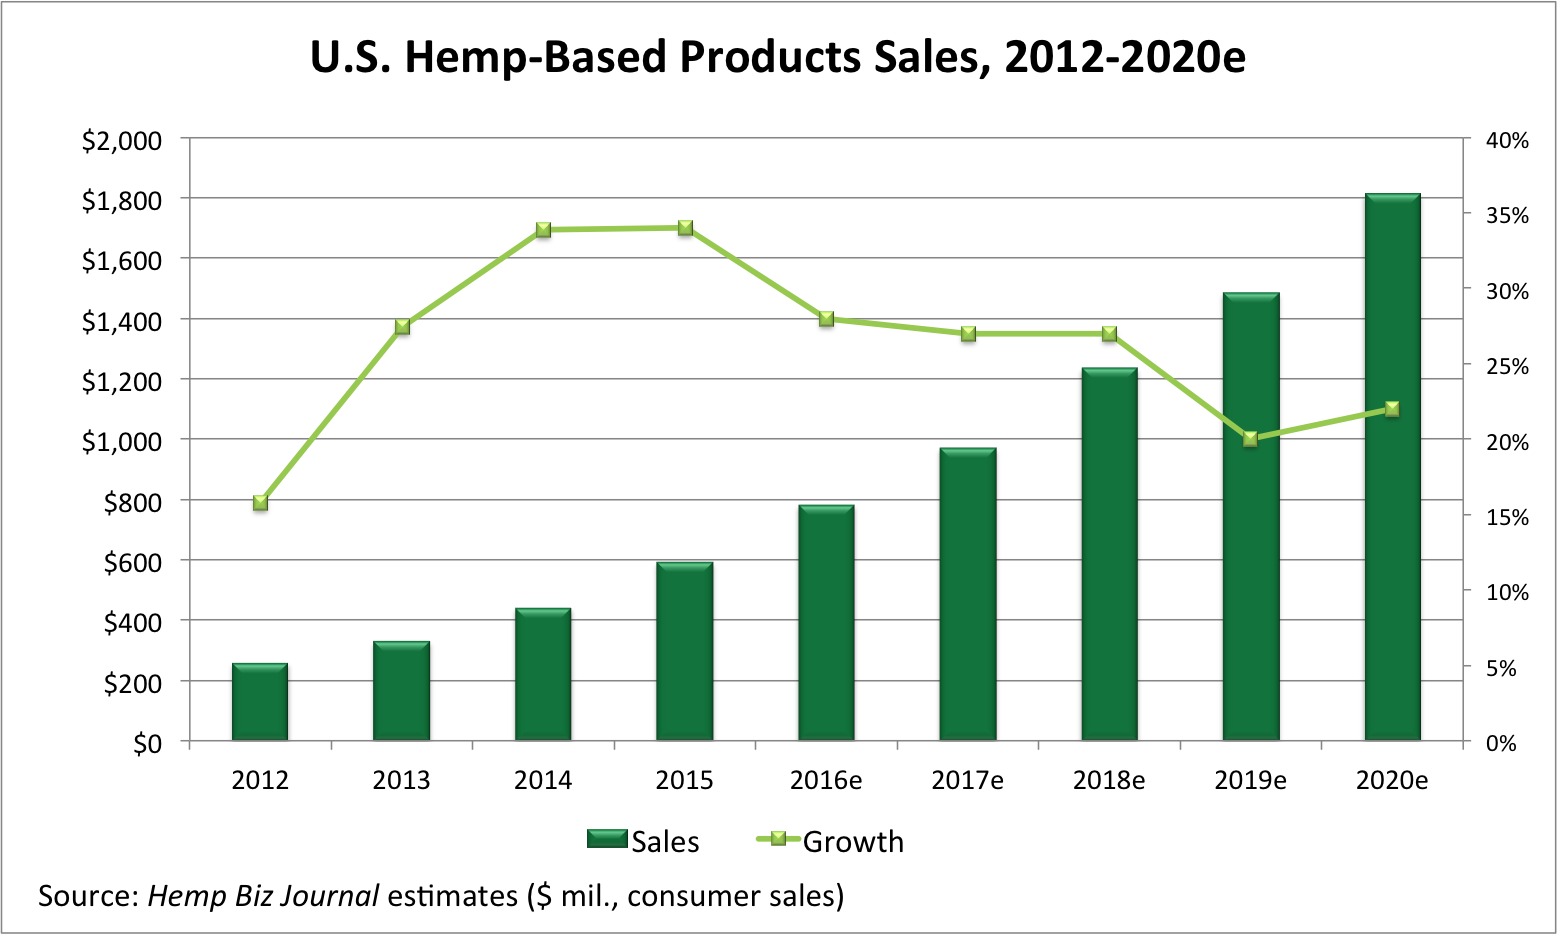 Economics of the U.S. Hemp Industry